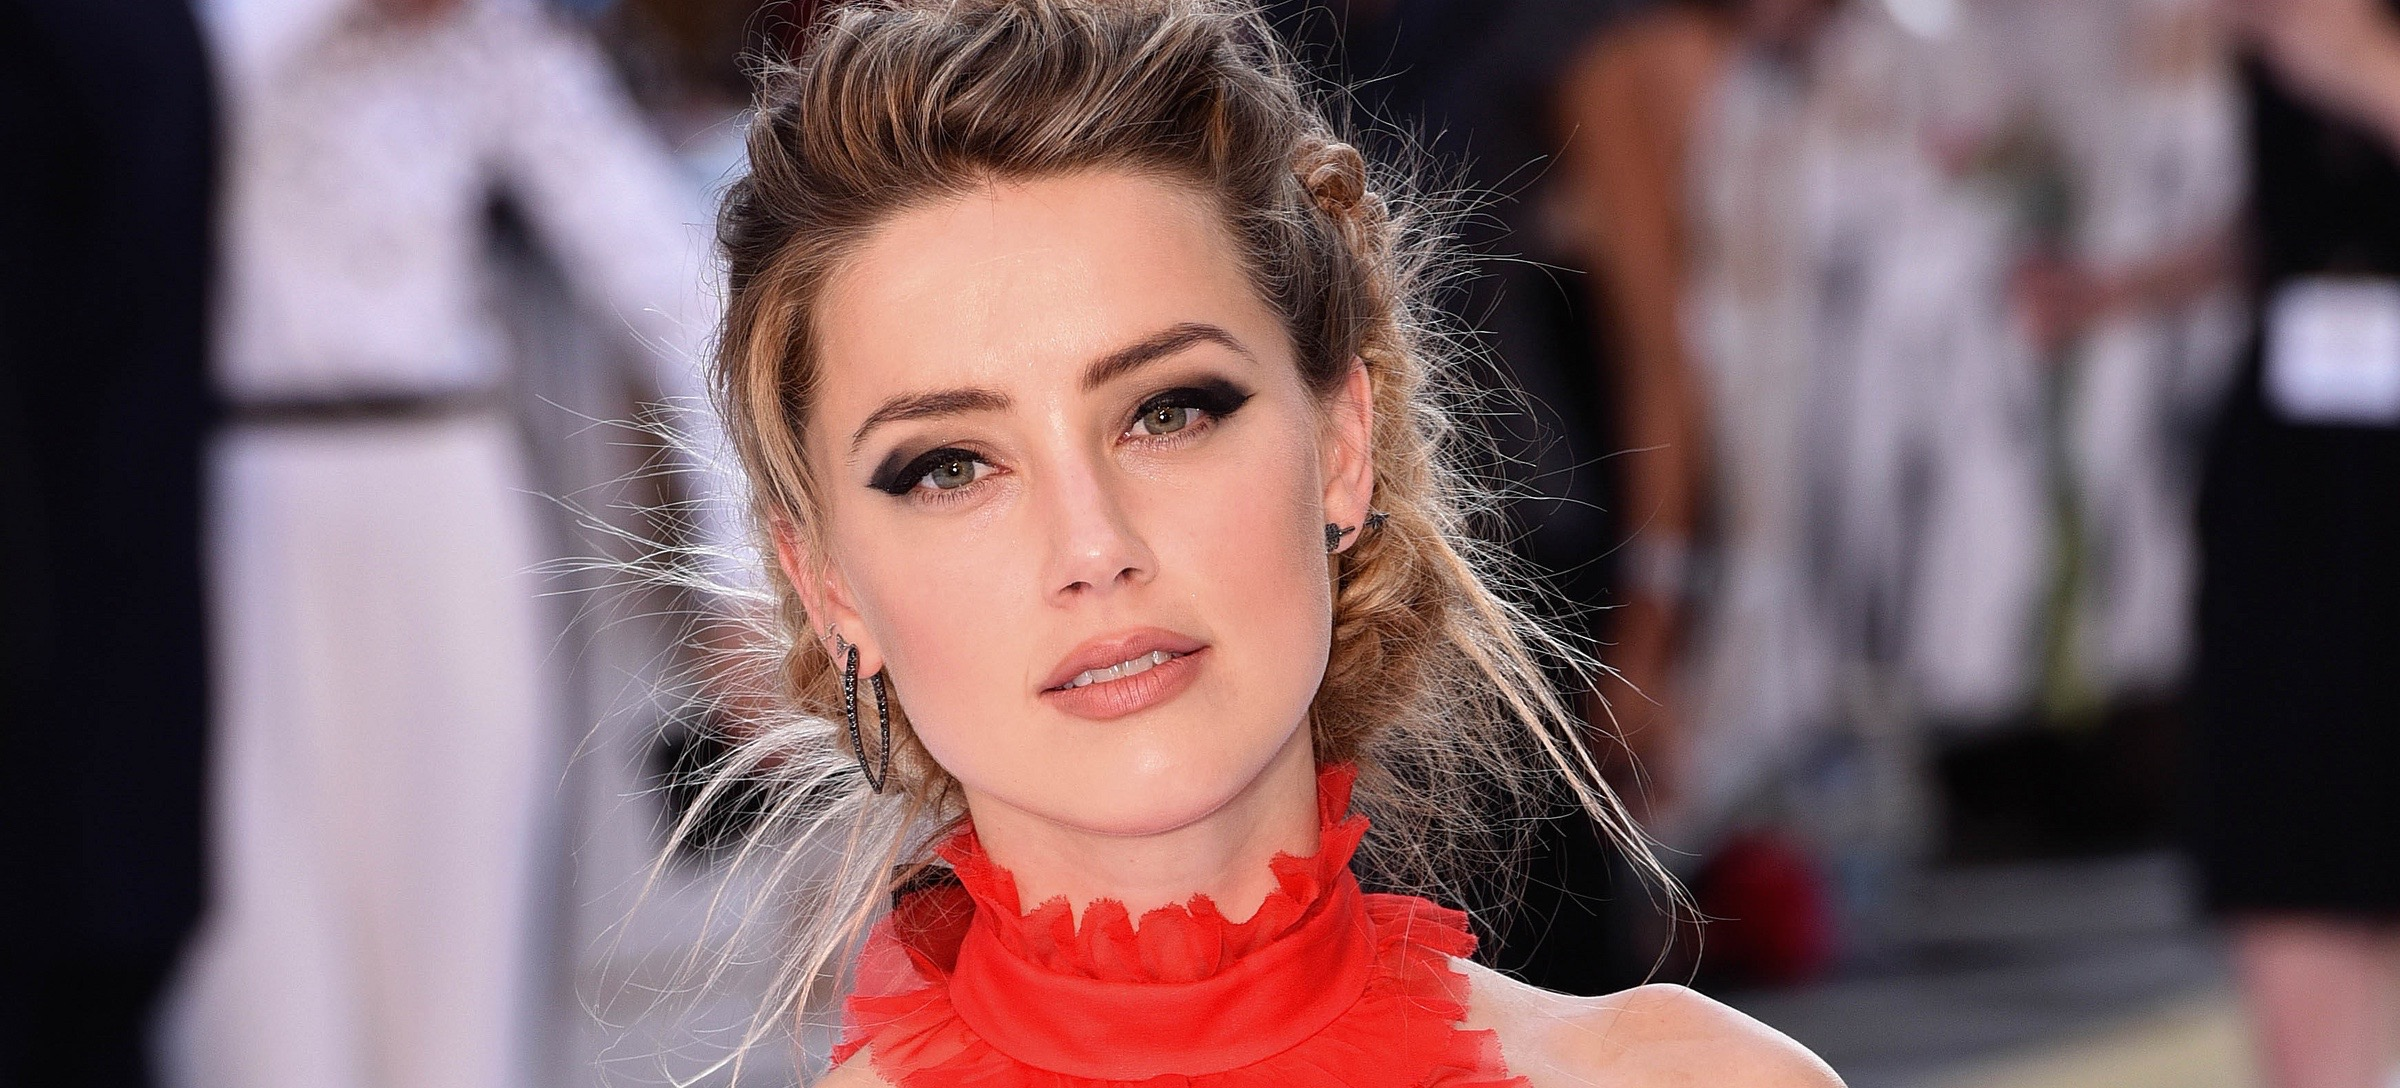 5 Fun Braid, Bun, and Blowout Ideas, Courtesy of Amber Heard